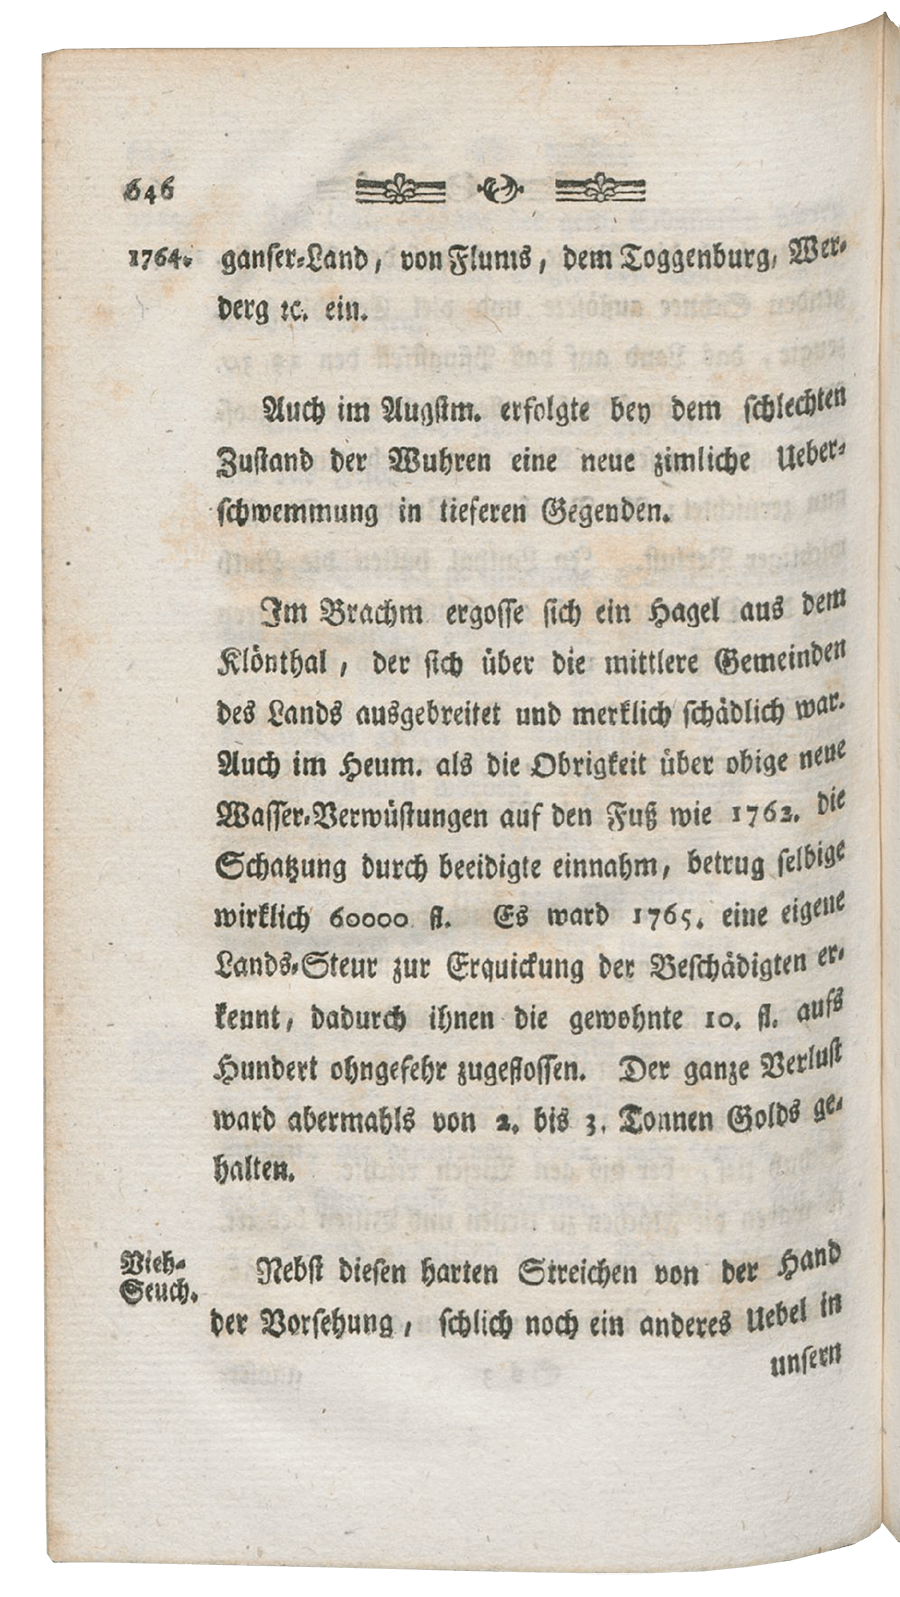 1764_1774_TrÅmpi_Glarner-Chronick_644-646-3